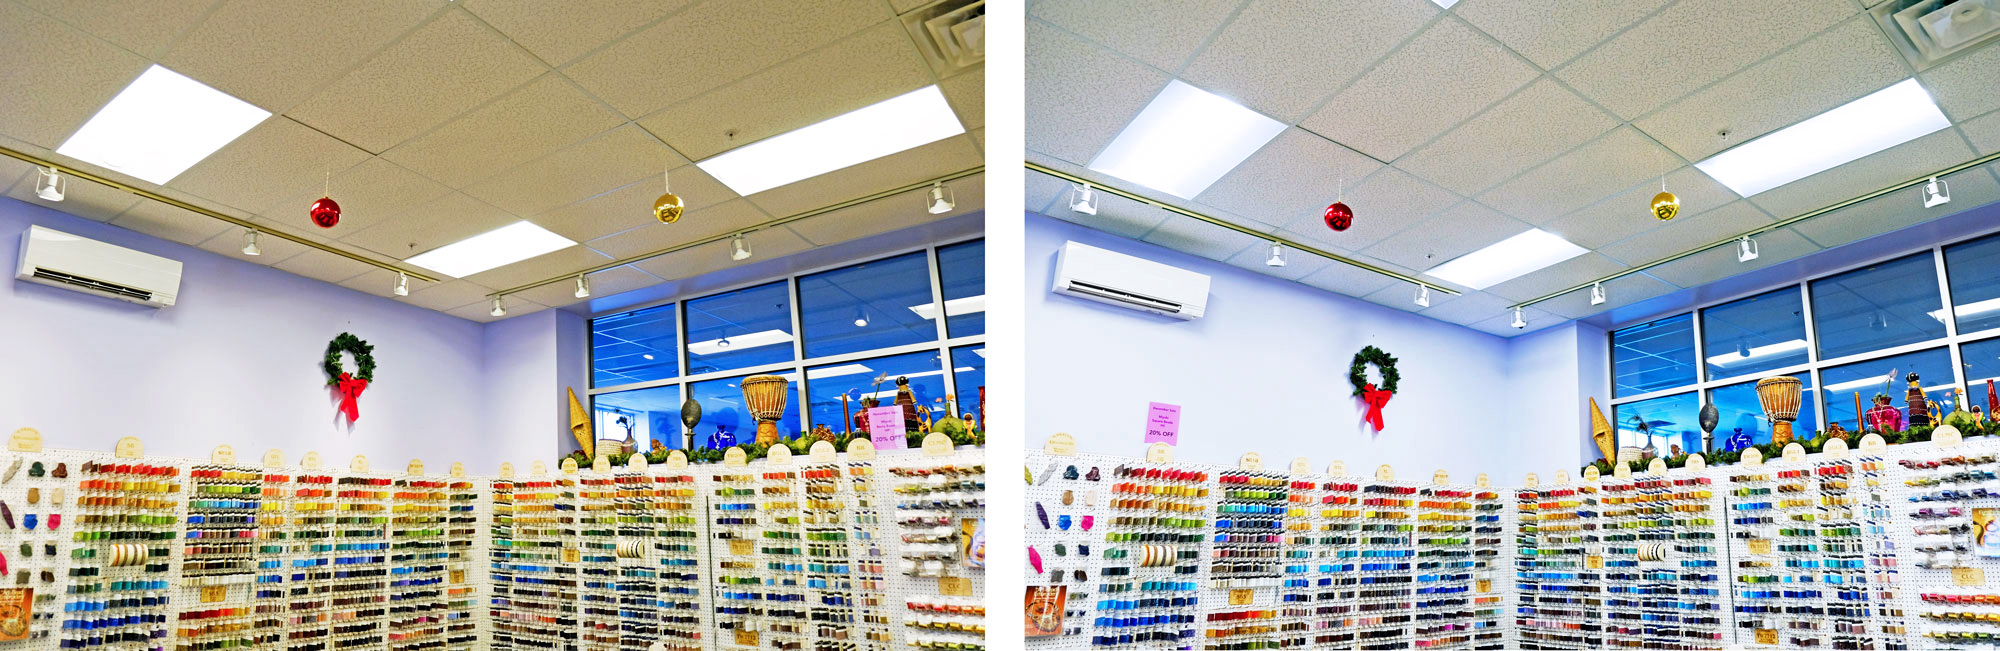 Caravan Beads before/after LED showroom lighting